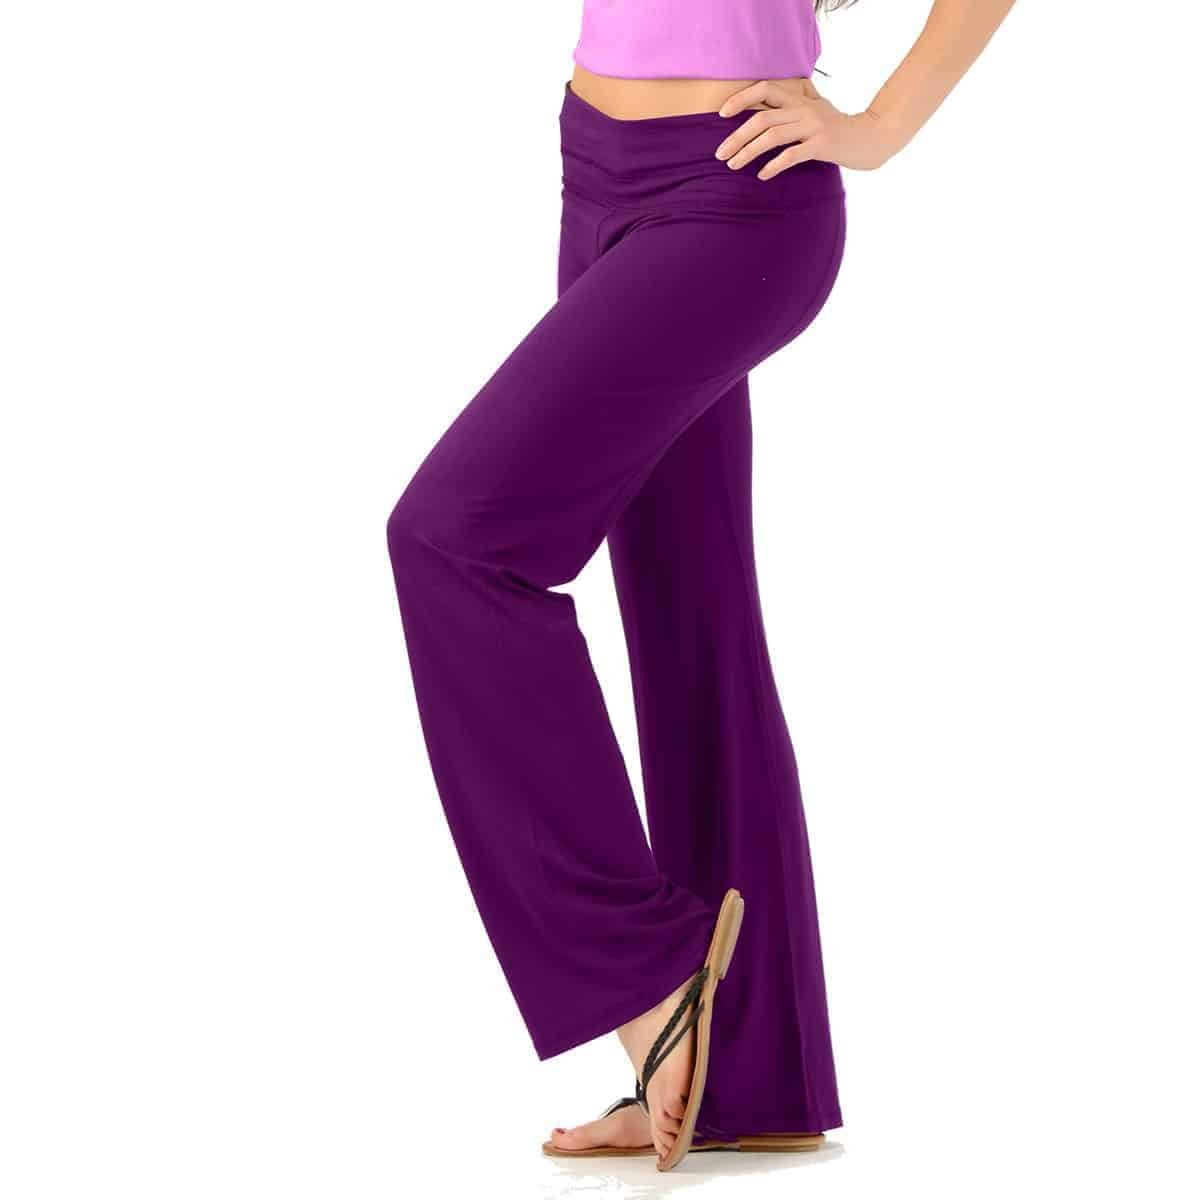 Bamboo Yoga Pants, Made In Canada -Plum